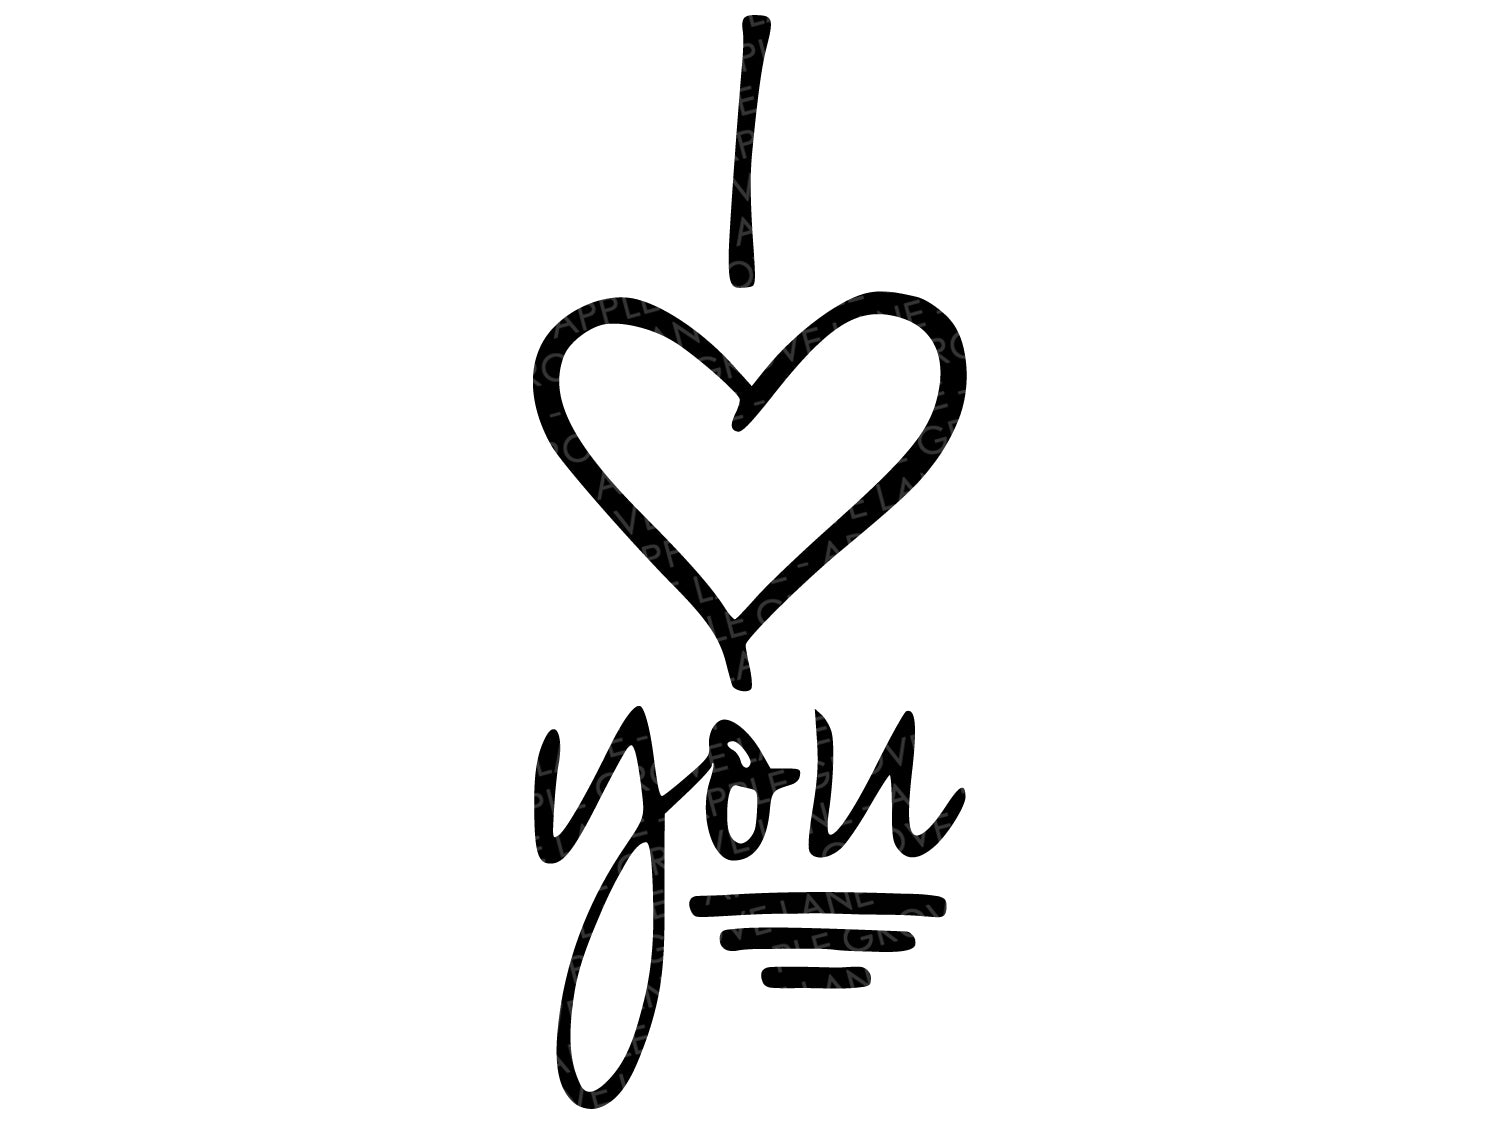 I heart you Svg - Love You Svg - Valentine's Day Svg - Love Svg - I Love You Svg - Wedding Svg - Svg Eps Dxf Png